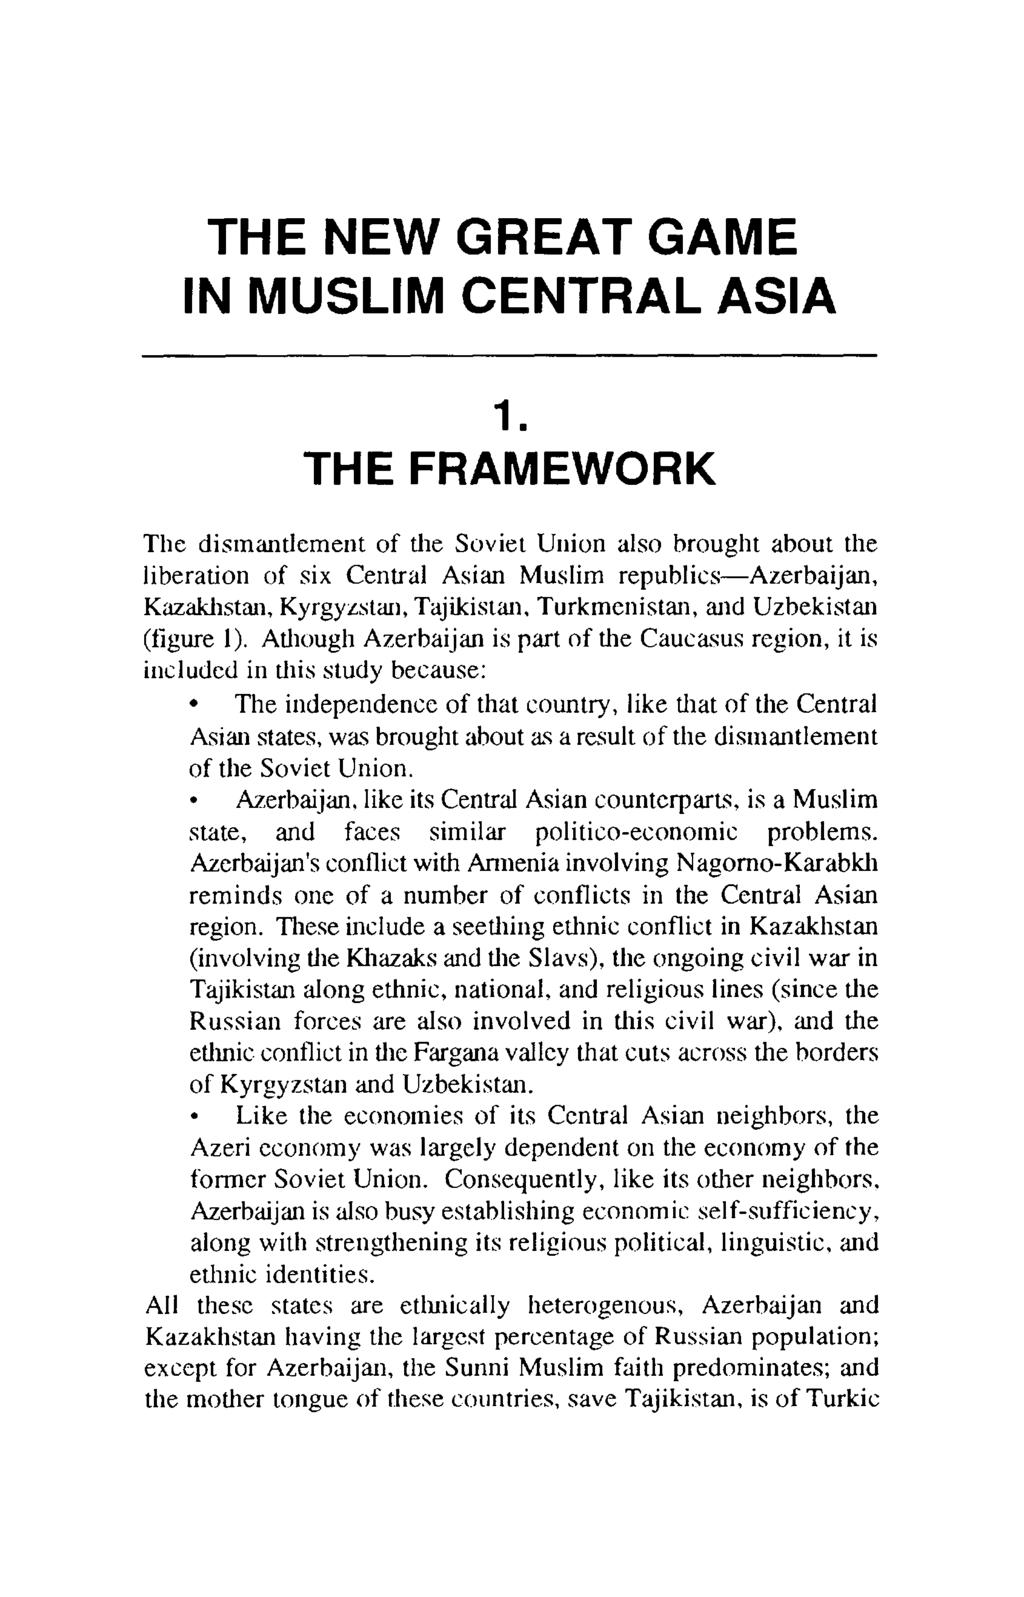 THE NEW GREAT GAME IN MUSLIM CENTRAL ASIA THE FRAMEWORK The dismantlement of the Soviet Union also brought about the liberation of six Central Asian Muslim republics--azerbaijan, Kazakhstan,